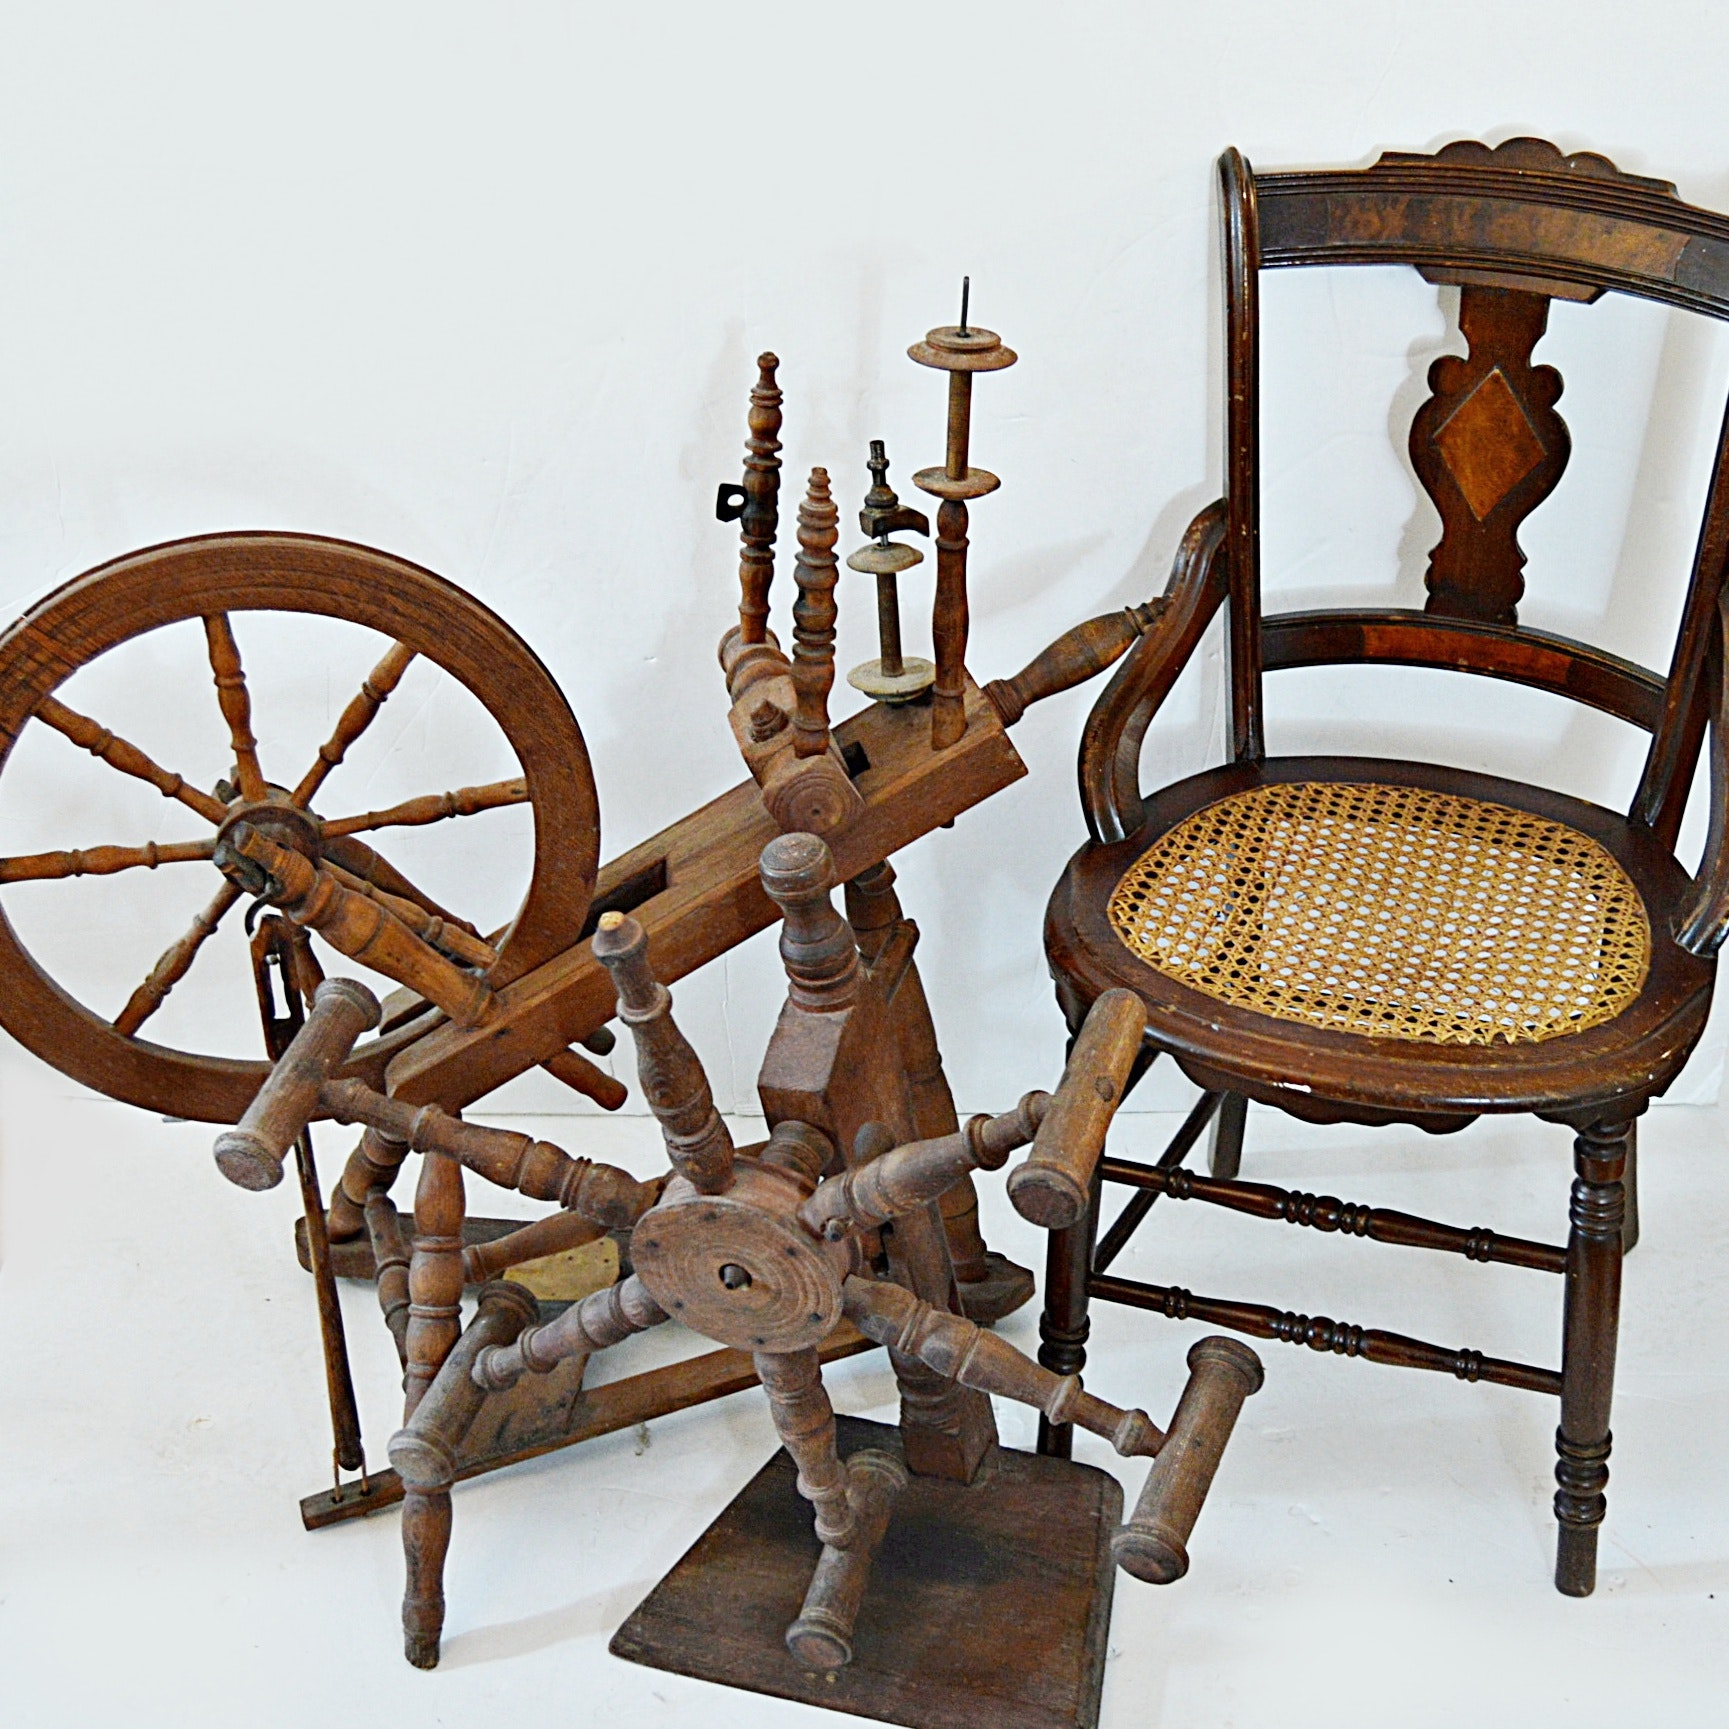 Superieur Antique Spinning Wheel, Yarn Winder And Eastlake Chair ...